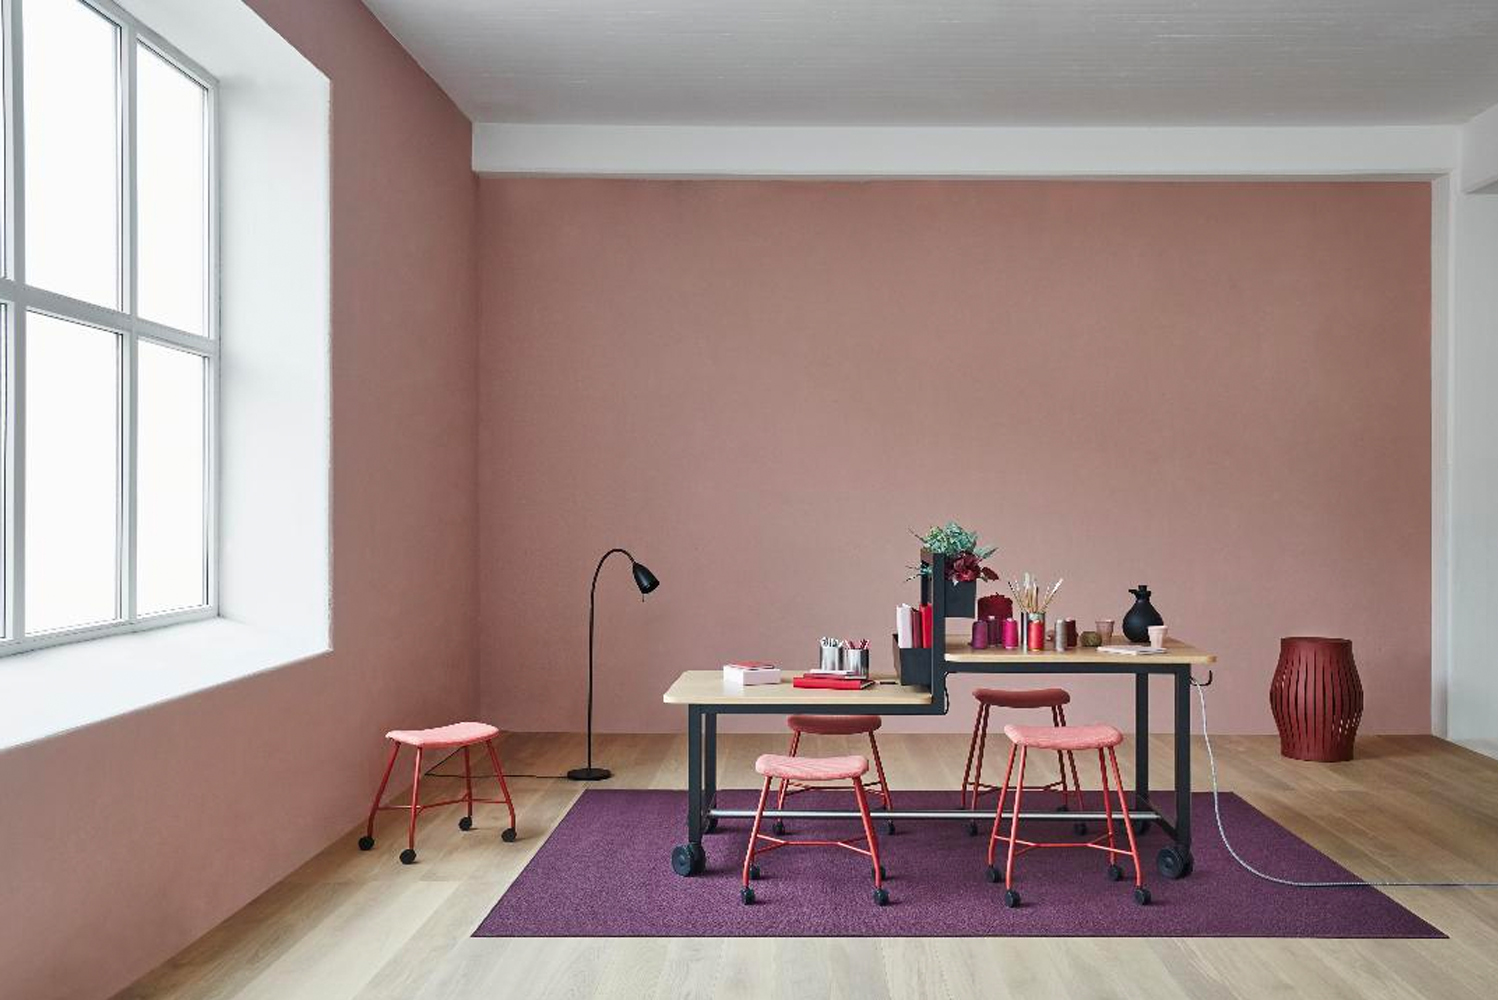 The furniture line was designed by Marie Oscarsson.